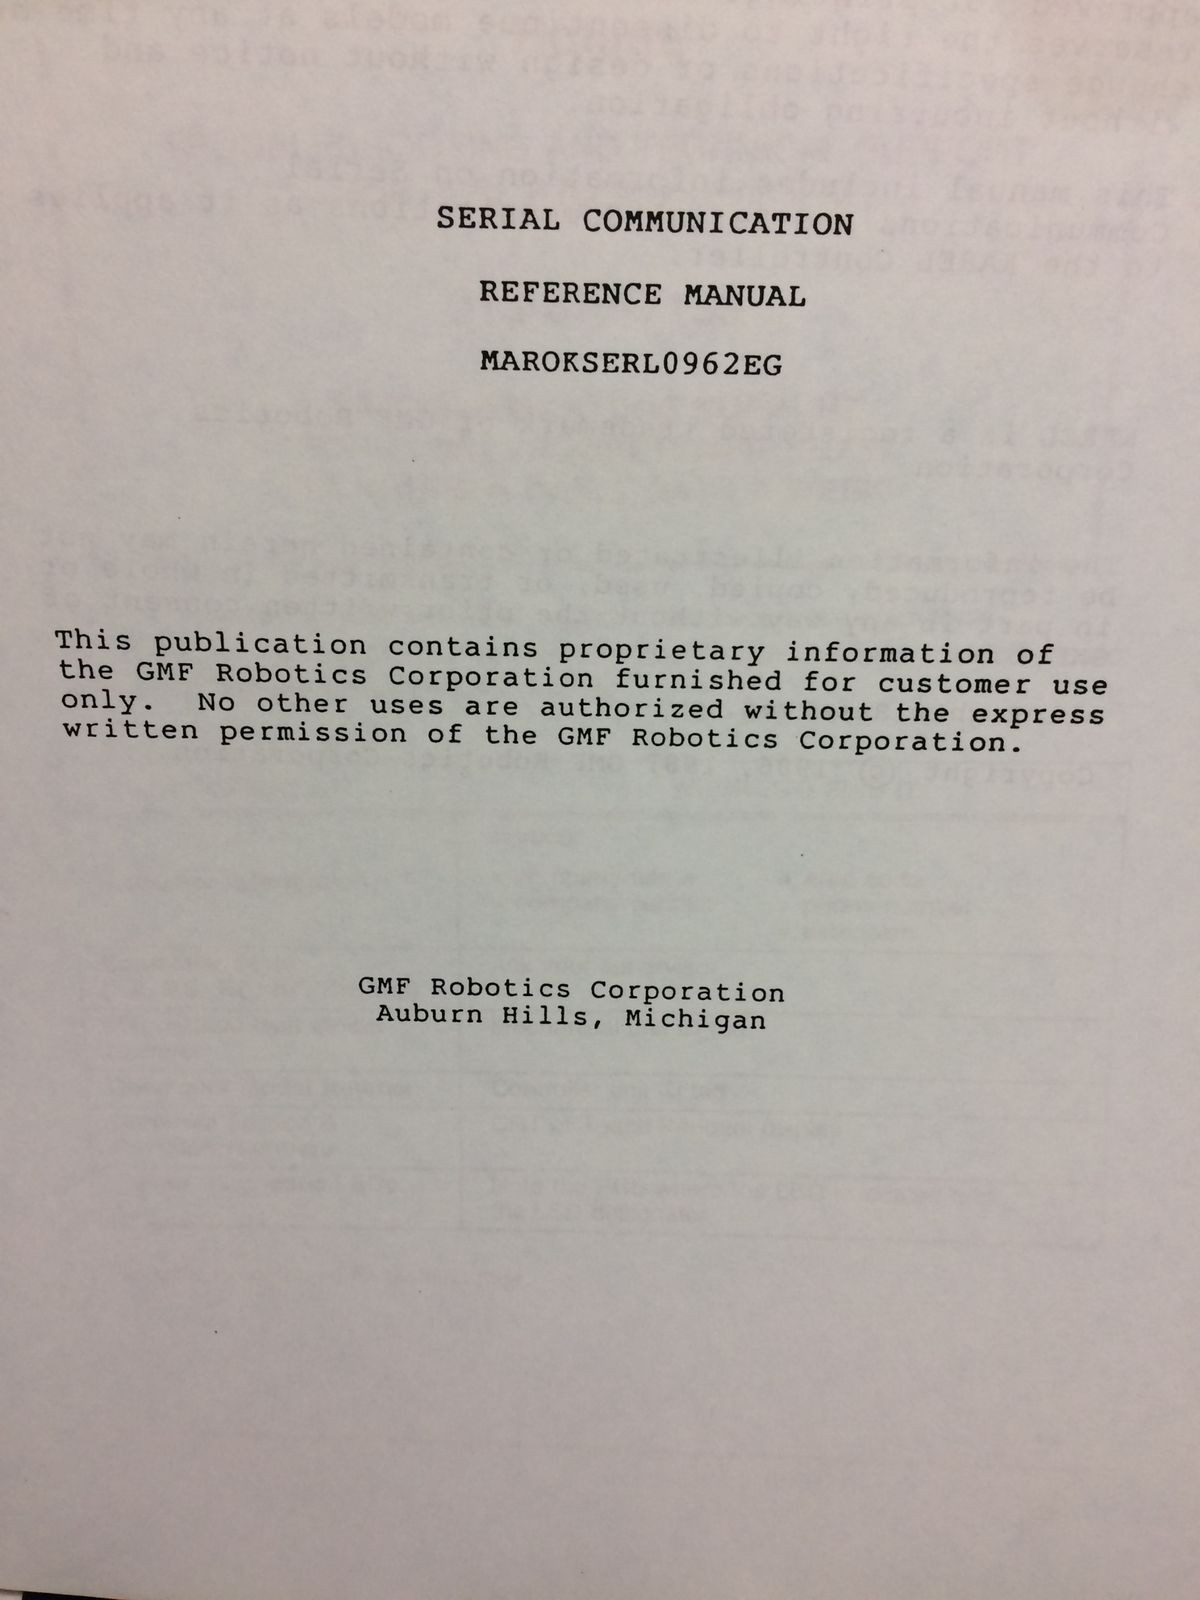 SERIAL COMUNICATION REFERENCE MANUAL